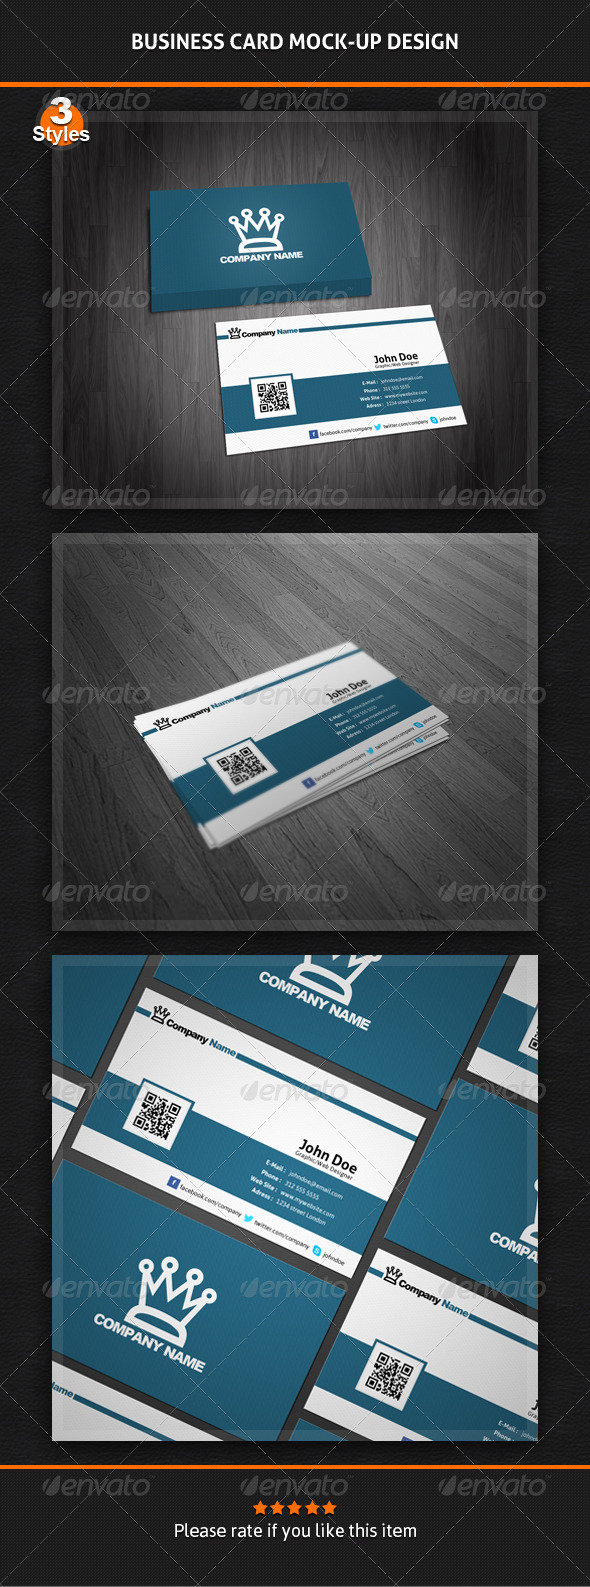 Business Card Mock-Up Pack - 3 Styles - Business Cards Print